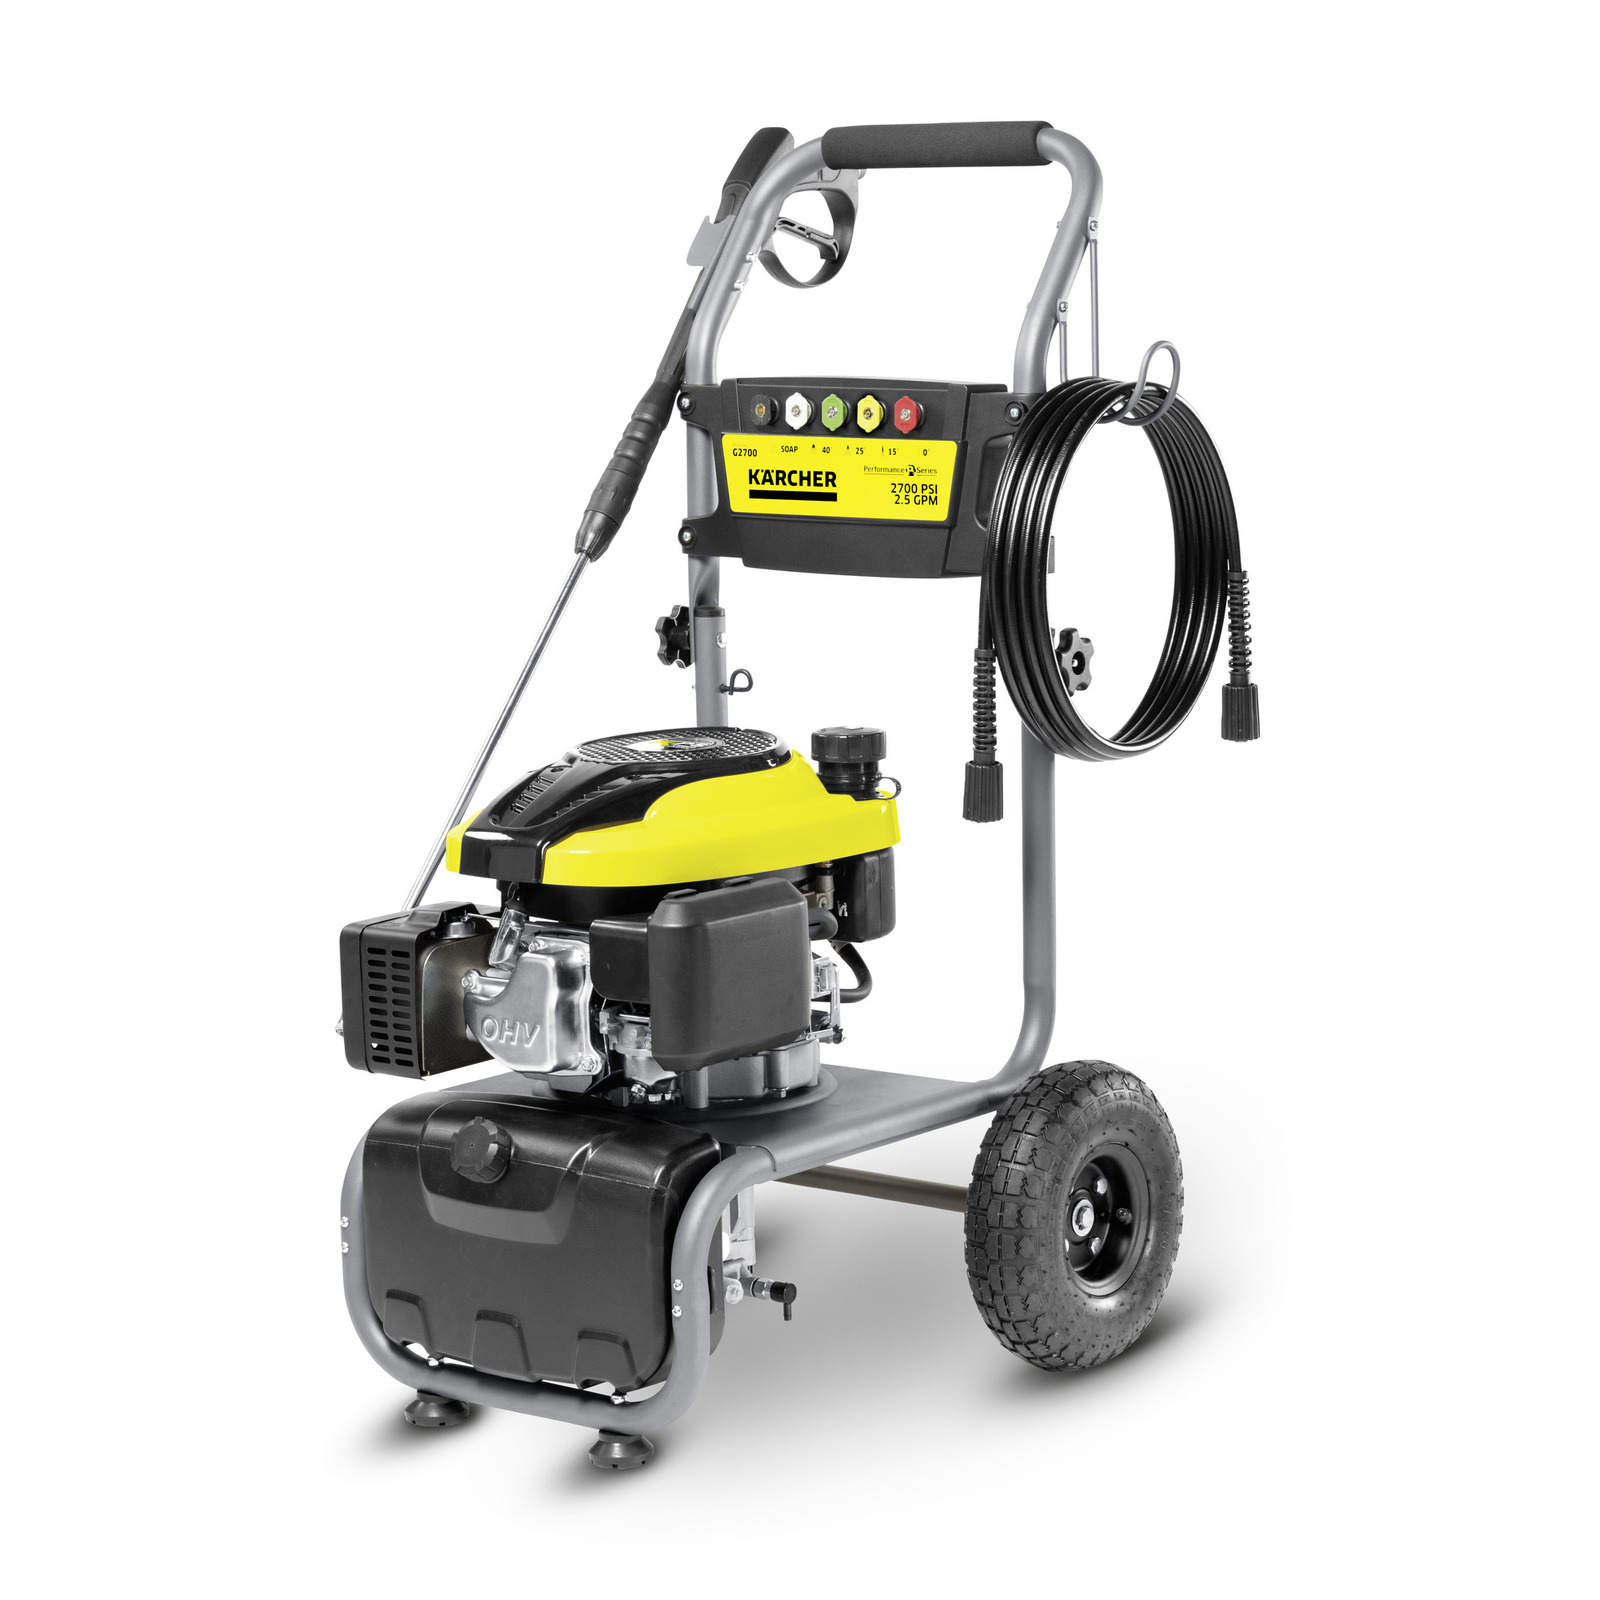 G 2700 Gas Powered Pressure Washer 2700 Psi 1 107 266 0